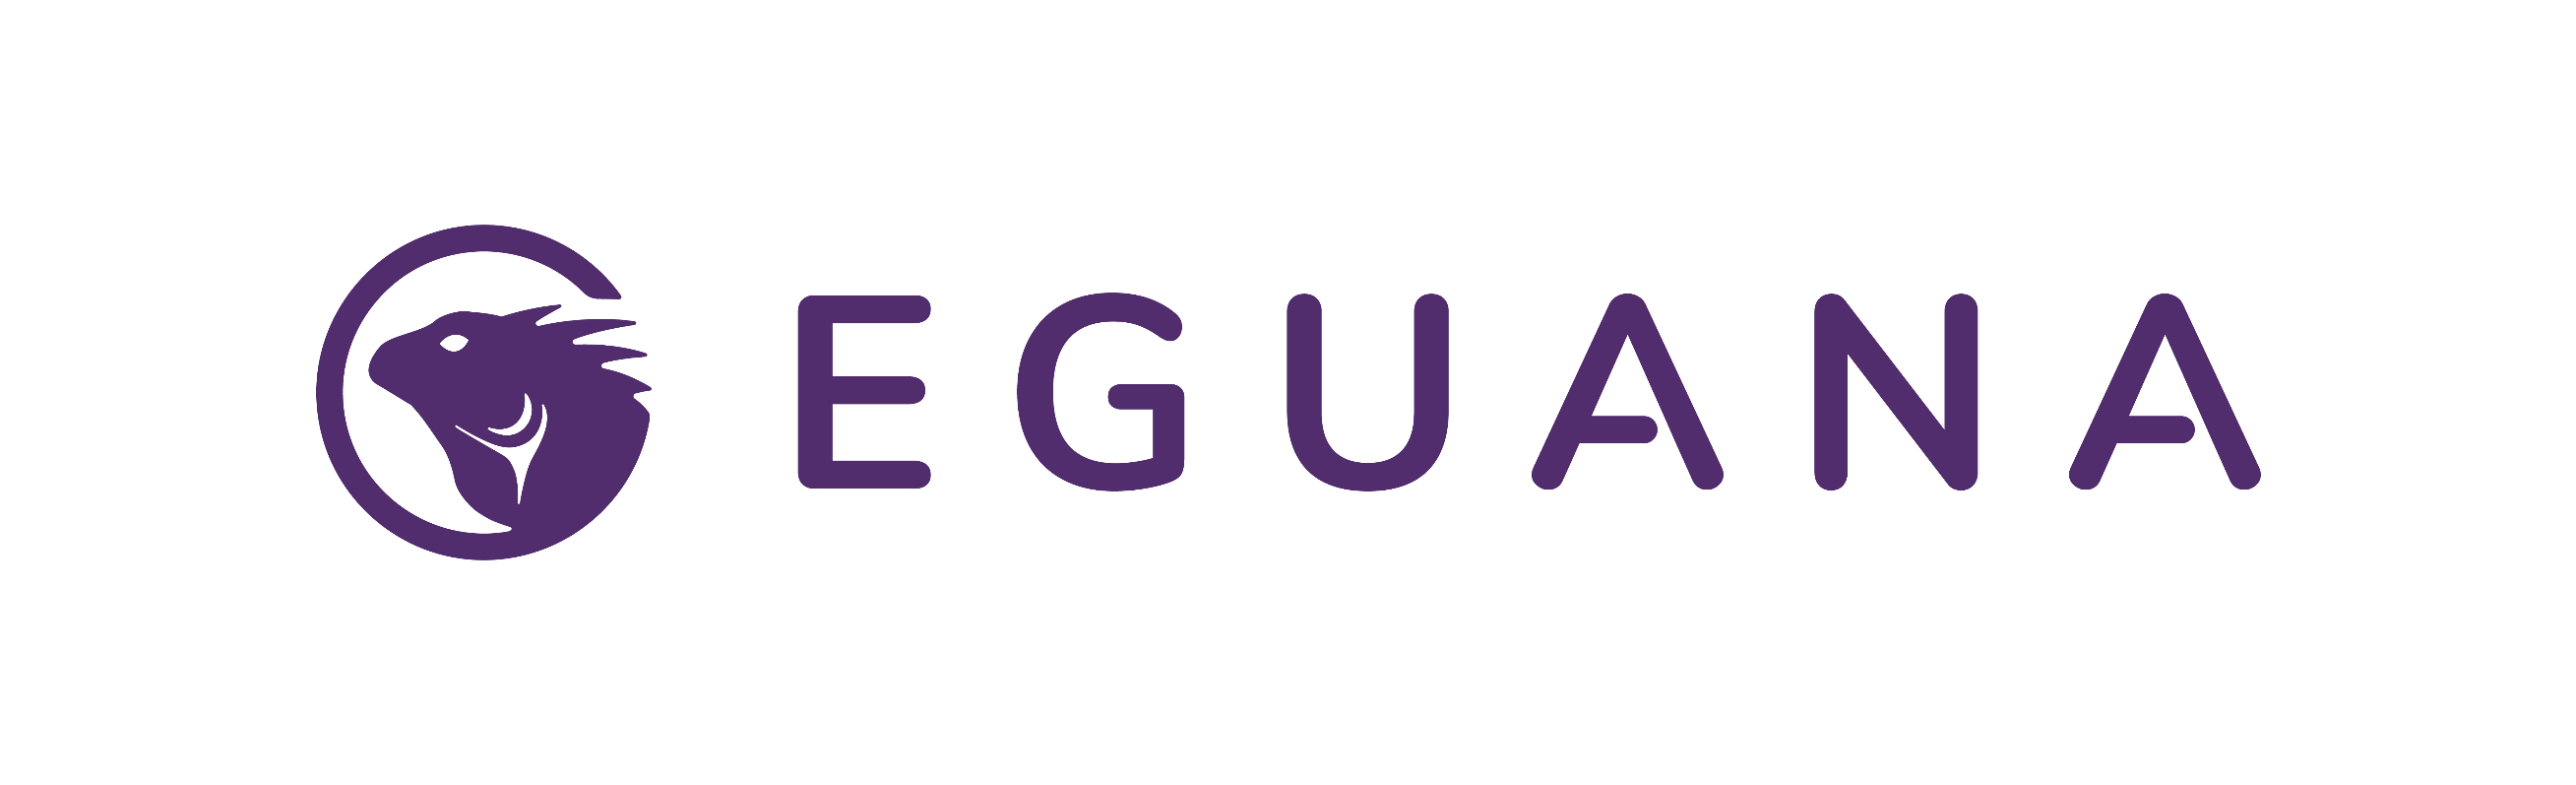 Eguana Provides California Update and Announces $1 Million Brokered Private Placement to Fund Expanding Cobalt Free Evolve Product Line